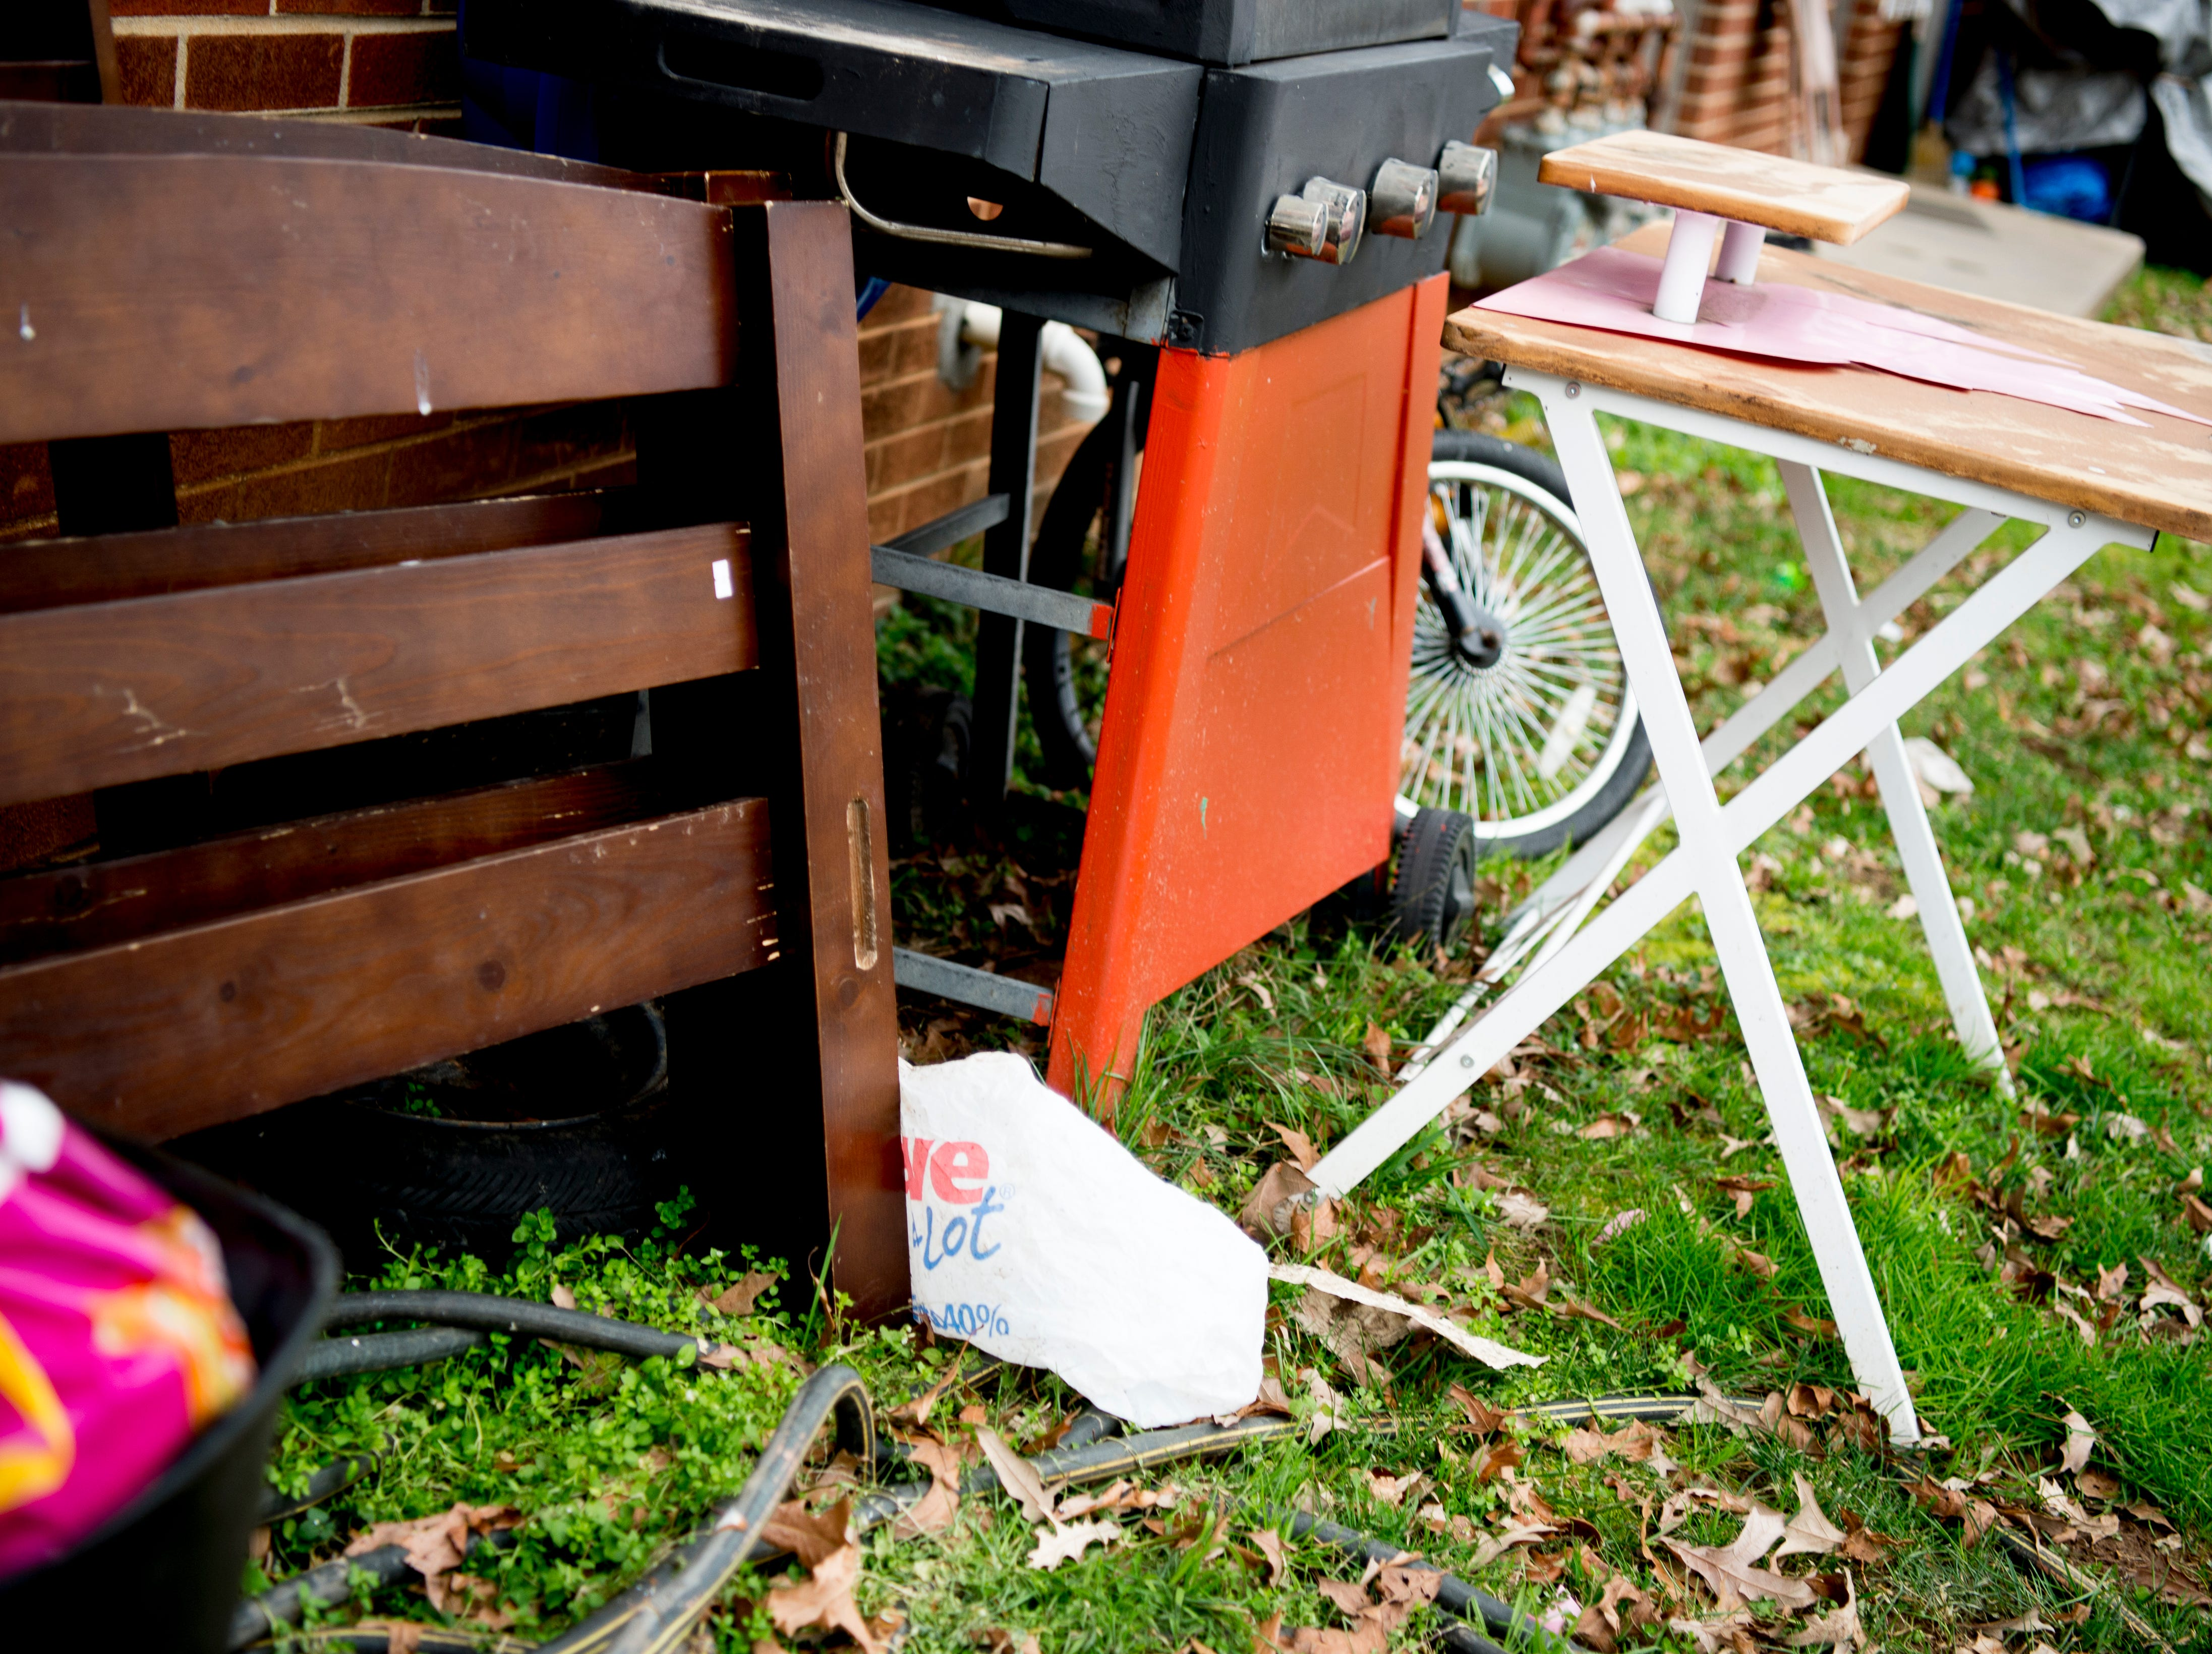 Items are strewn about on the lawn in Austin Homes in Knoxville, Tennessee, on Wednesday, January 23, 2019. Knoxville's Community Development Corporation (KCDC) plans a revitalization of the site into a residential neighborhood with potential for affordable, workforce and market-rate housing units, as well as other appropriate non-residential uses.